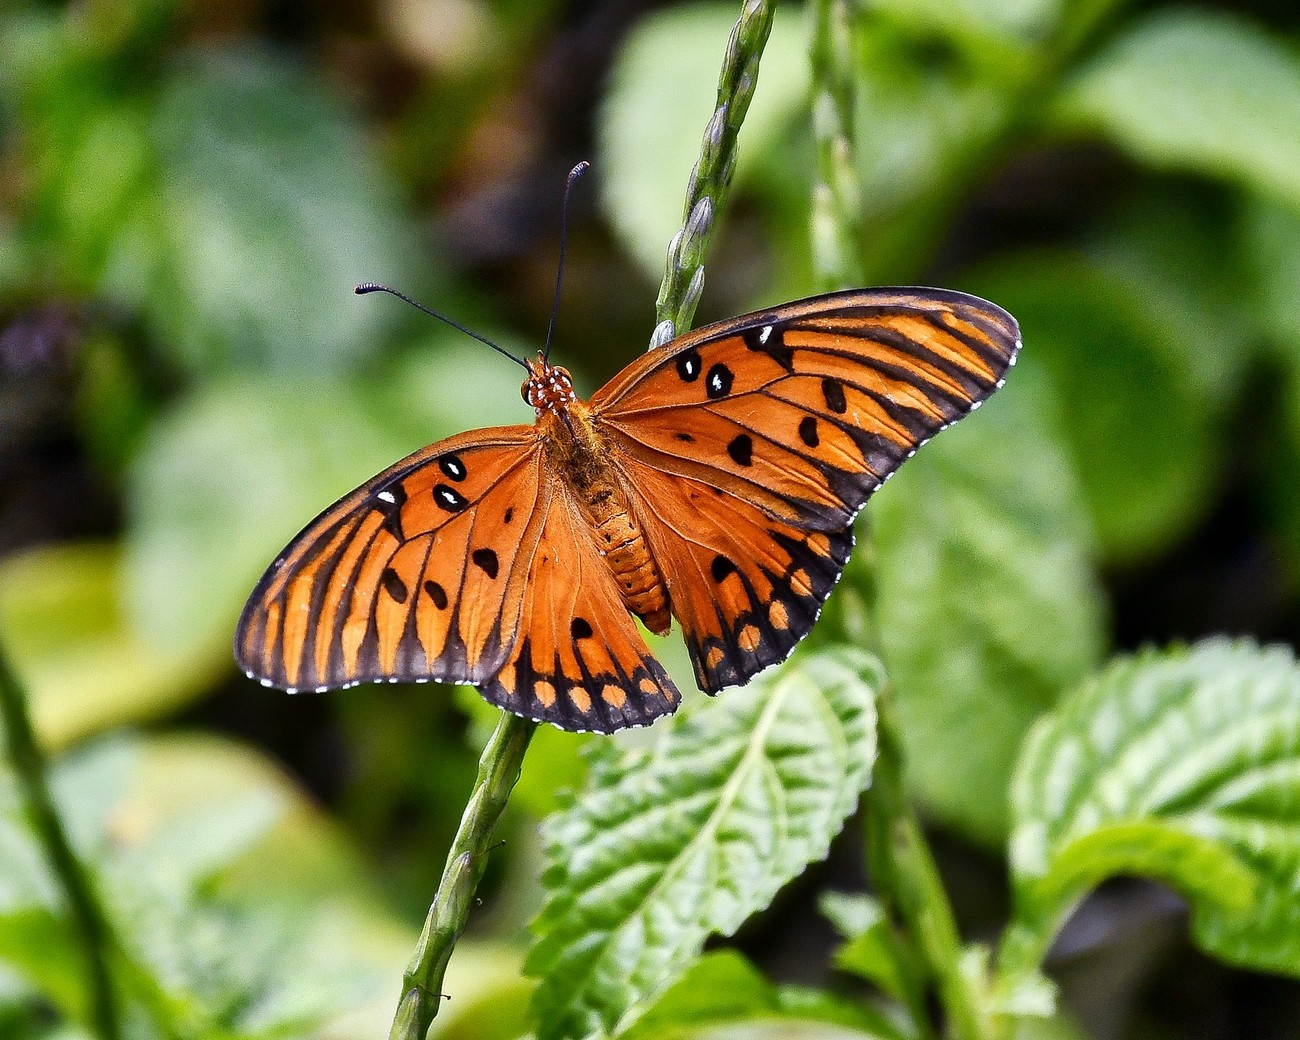 The Gulf fritillary occurs throughout the southern United States.  This photo was taken in a garden in Sarasota, Fl that contained purple passionflower vines, which are well liked by this species to lay their eggs.